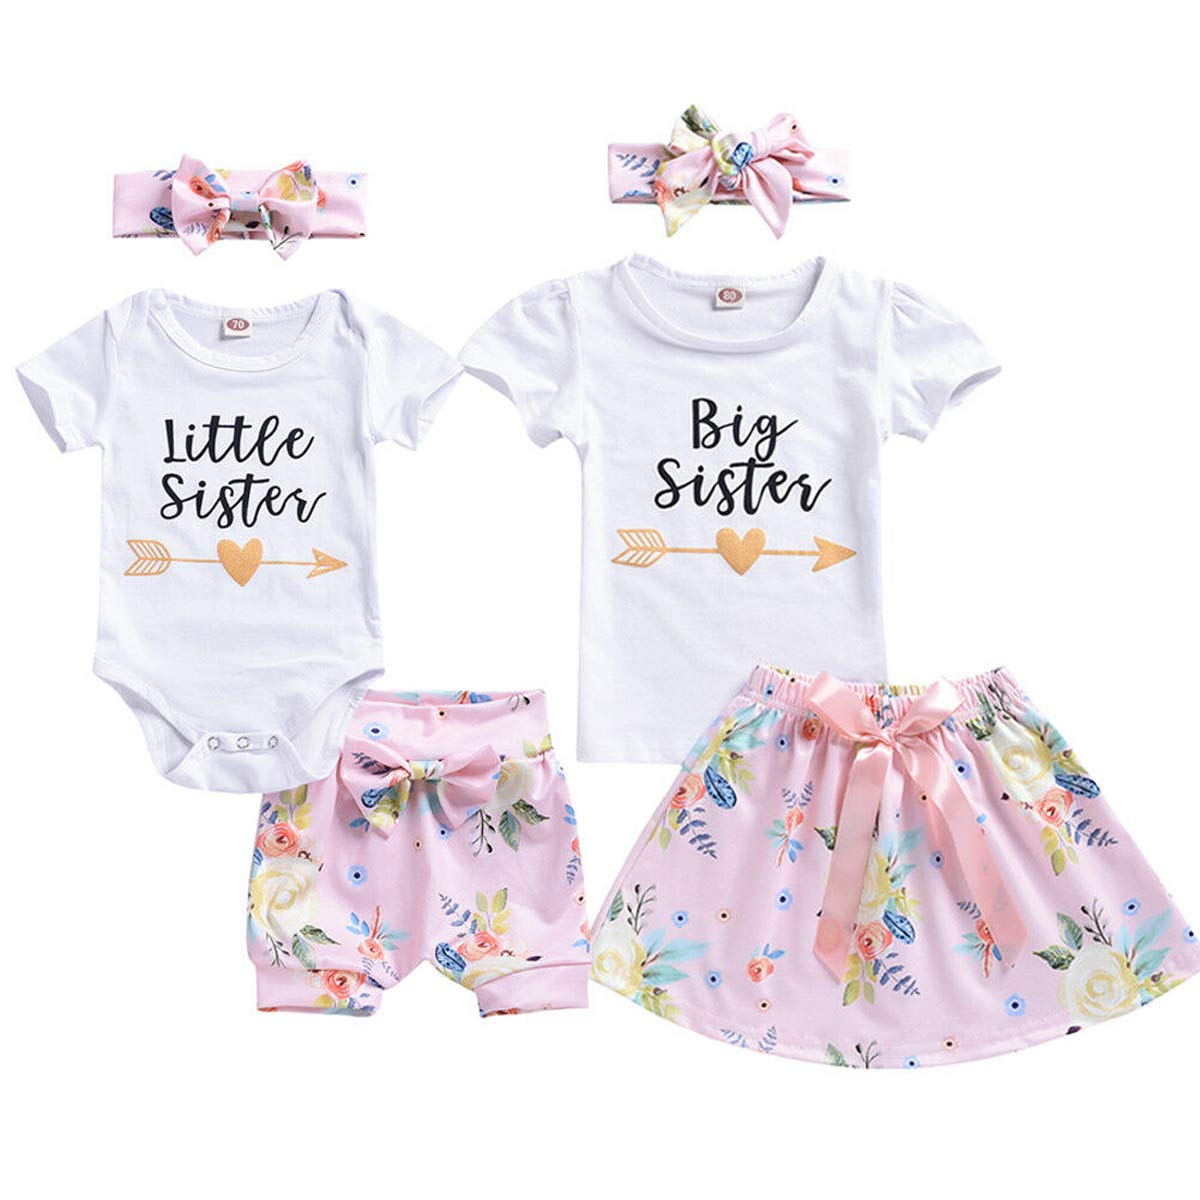 TheFound Infant Baby Girl Short Sleeve Little Siste Outfits Romper+ Floral Dress Bowknot Short Pants 3Pcs Shorts Outfits